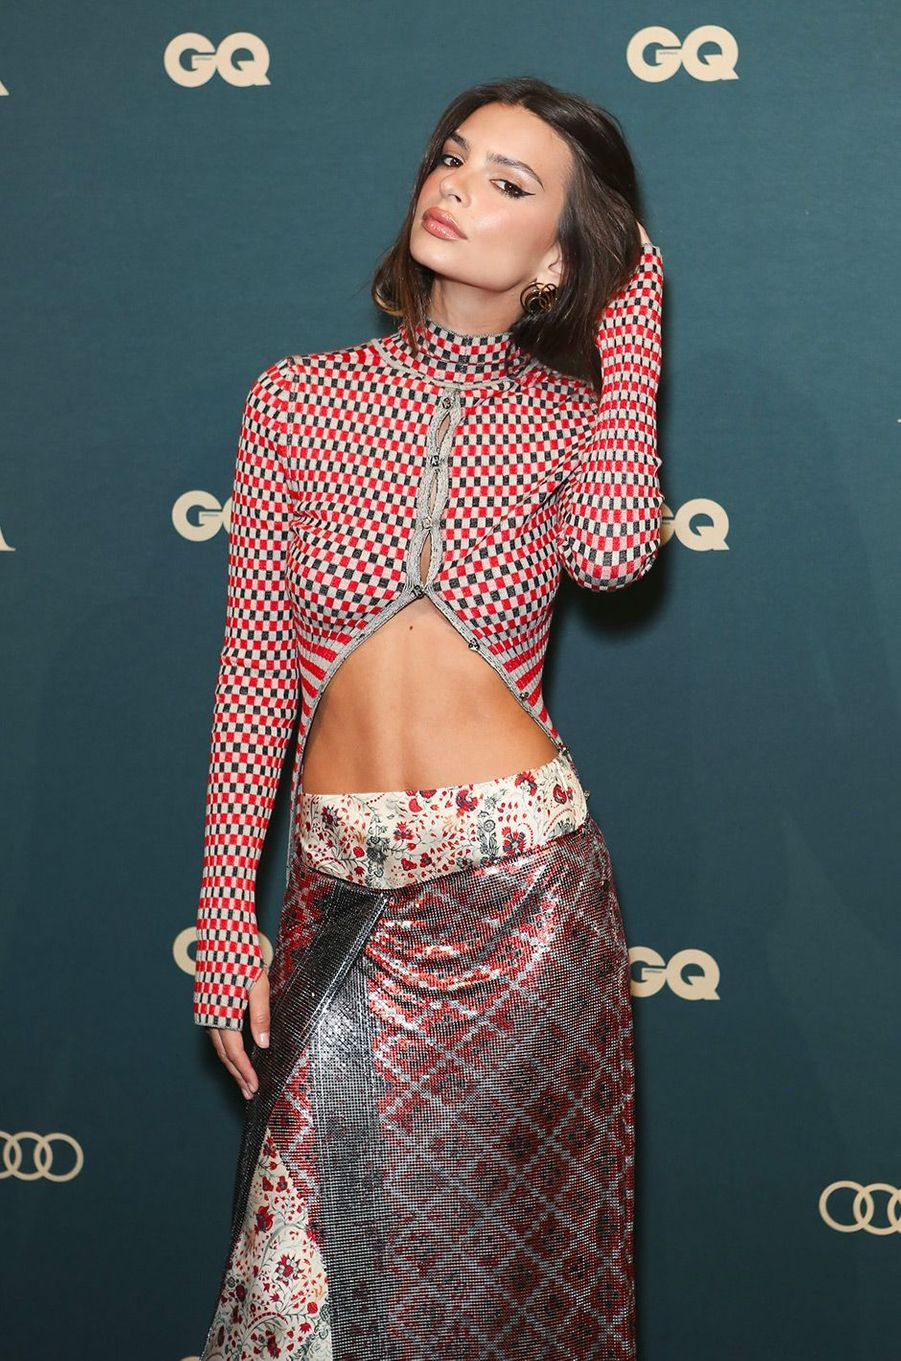 "Emily Ratajkowski à la soirée ""GQ Men of the year"", à Sidney, mercredi 14 novembre"